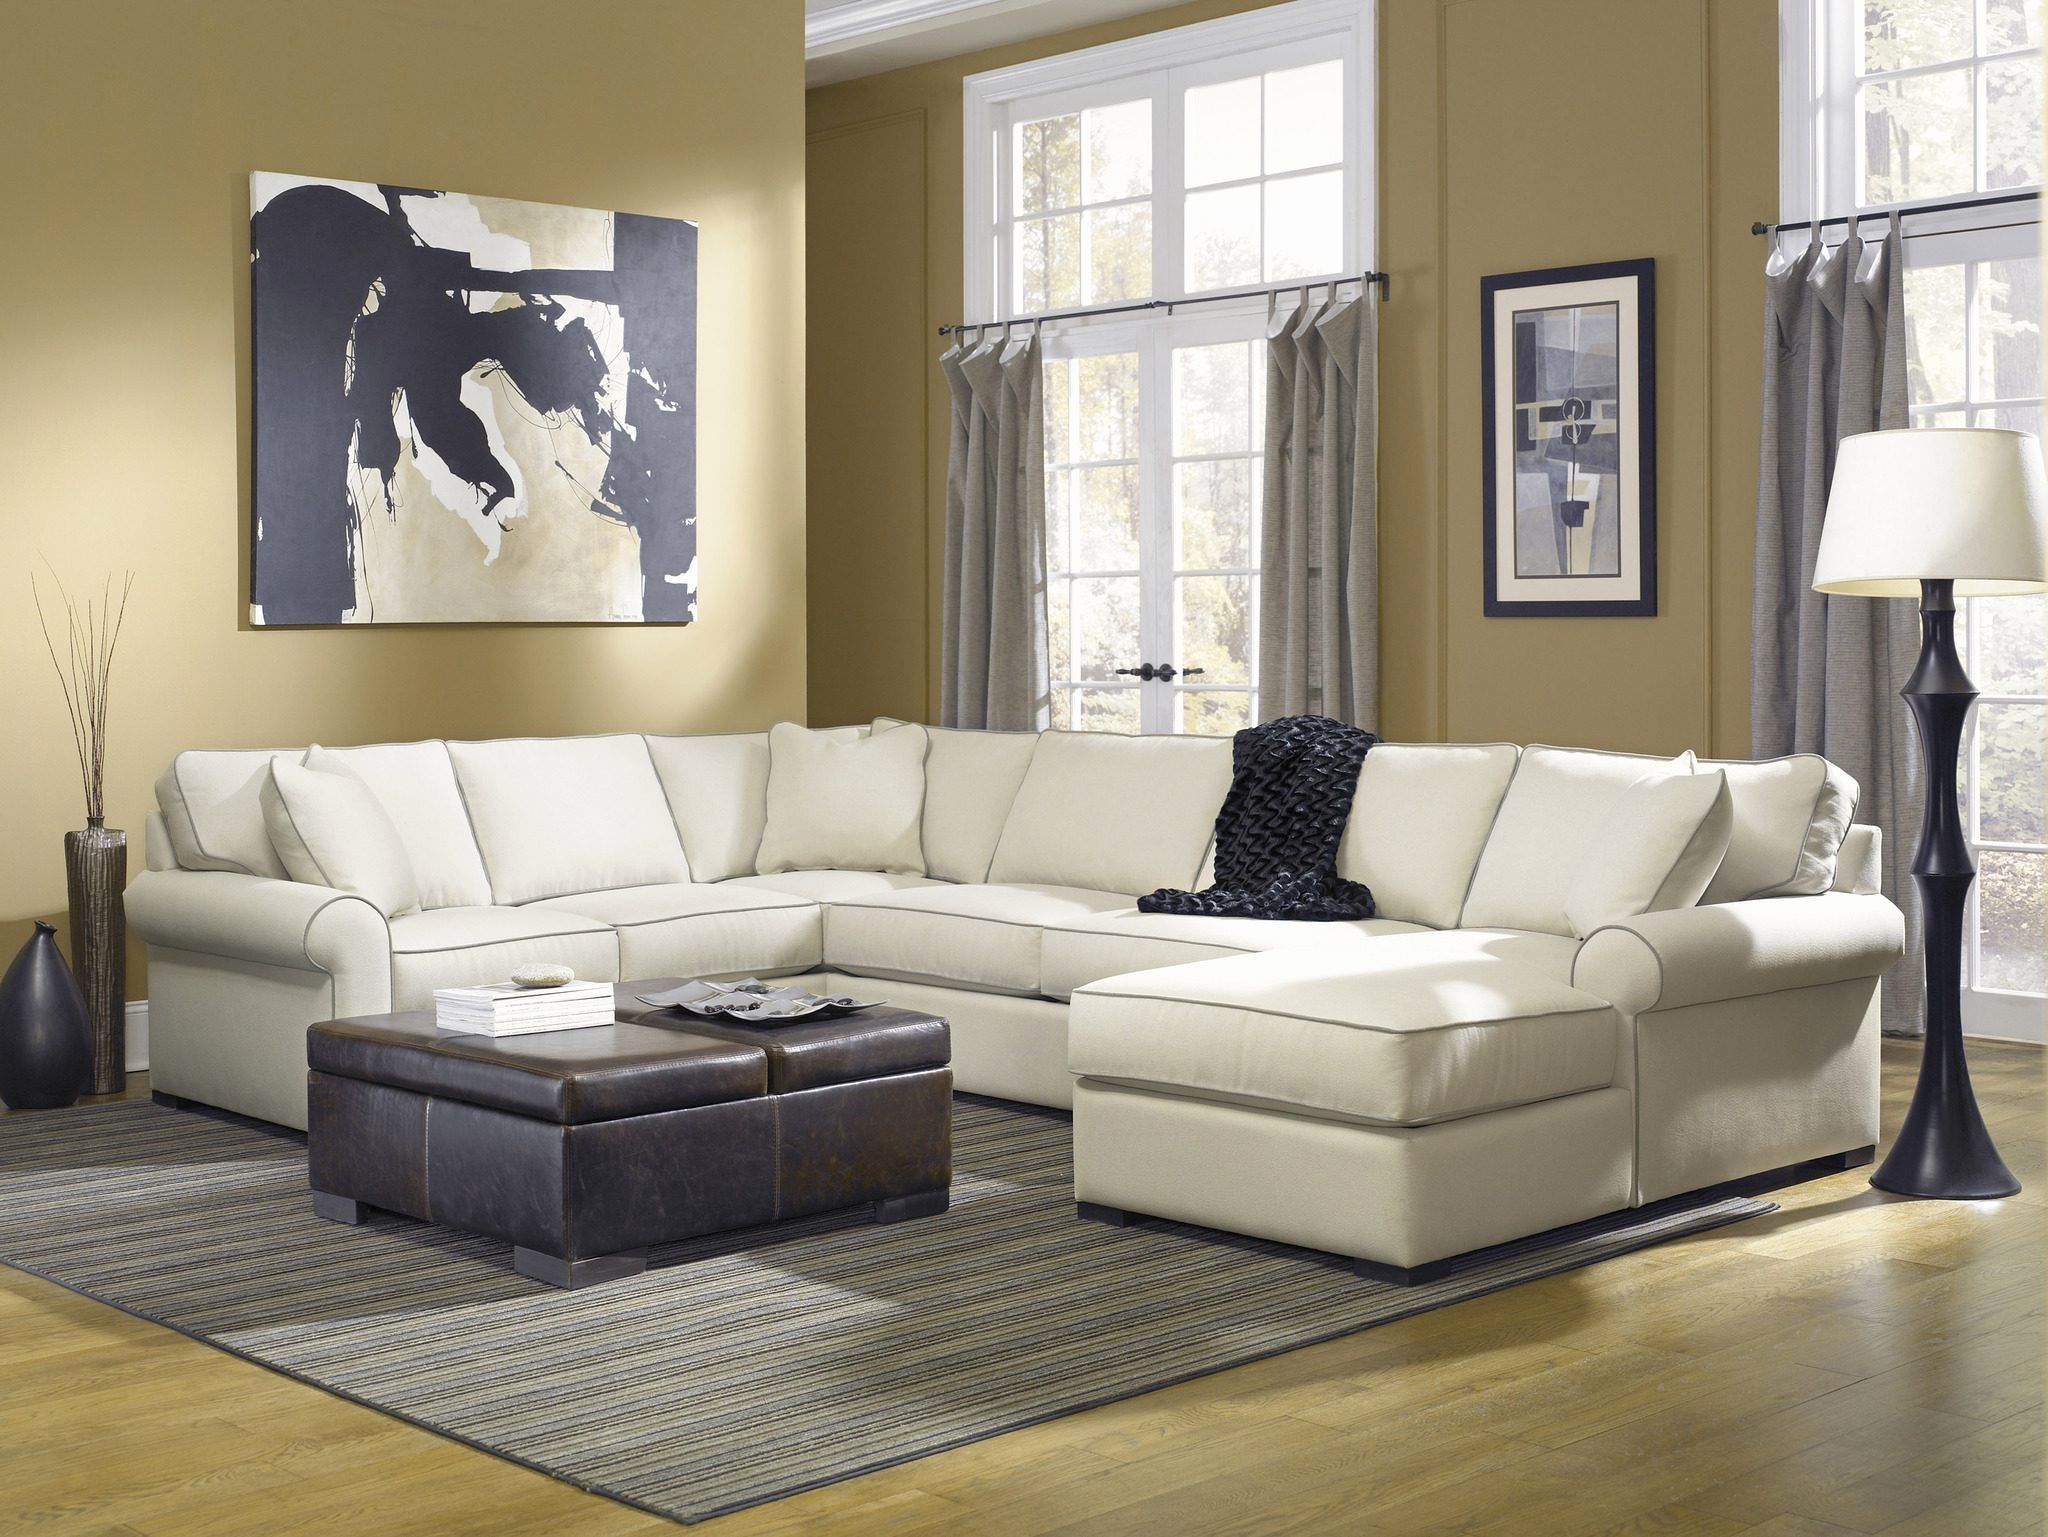 Best of down filled sectional sofa pictures down filled sectional sofa best of furniture robert michael furniture sectional robert michaels